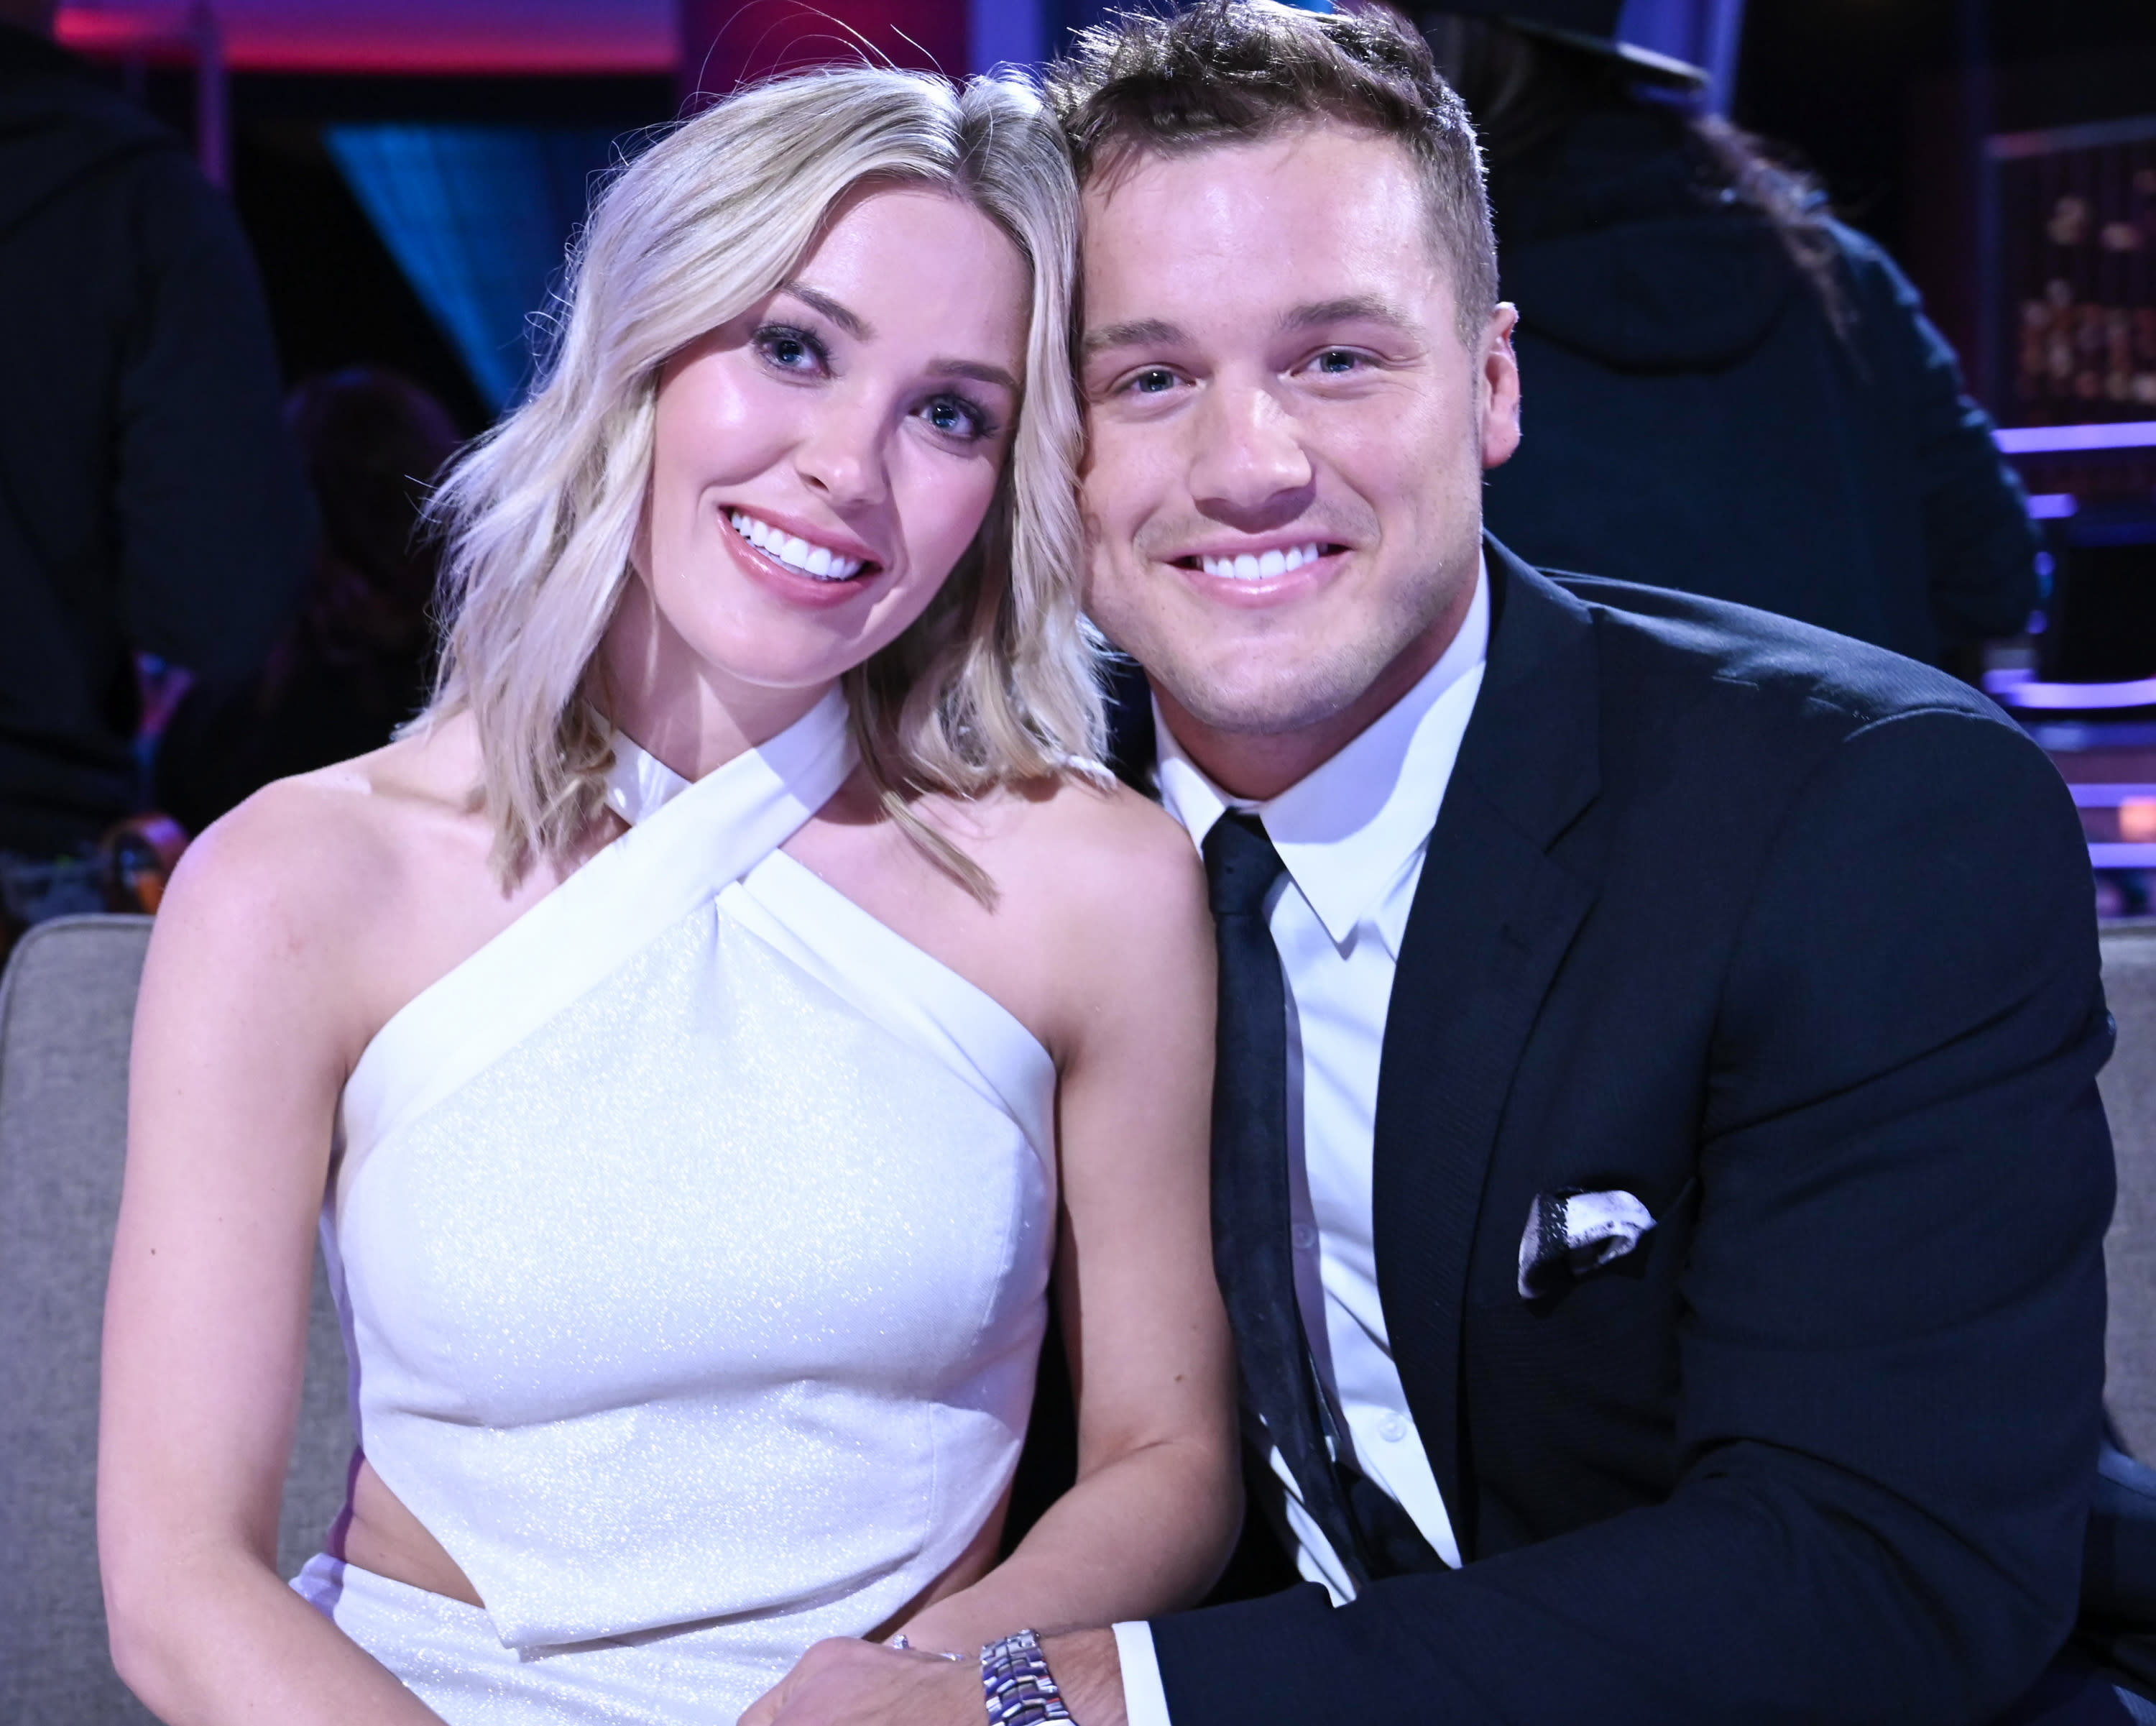 Colton Underwood (pictured with girlfriend Cassie Randolph) spills behind-the-scenes details about his experience on The Bachelor in his new memoir. (Photo: John Fleenor via Getty Images)